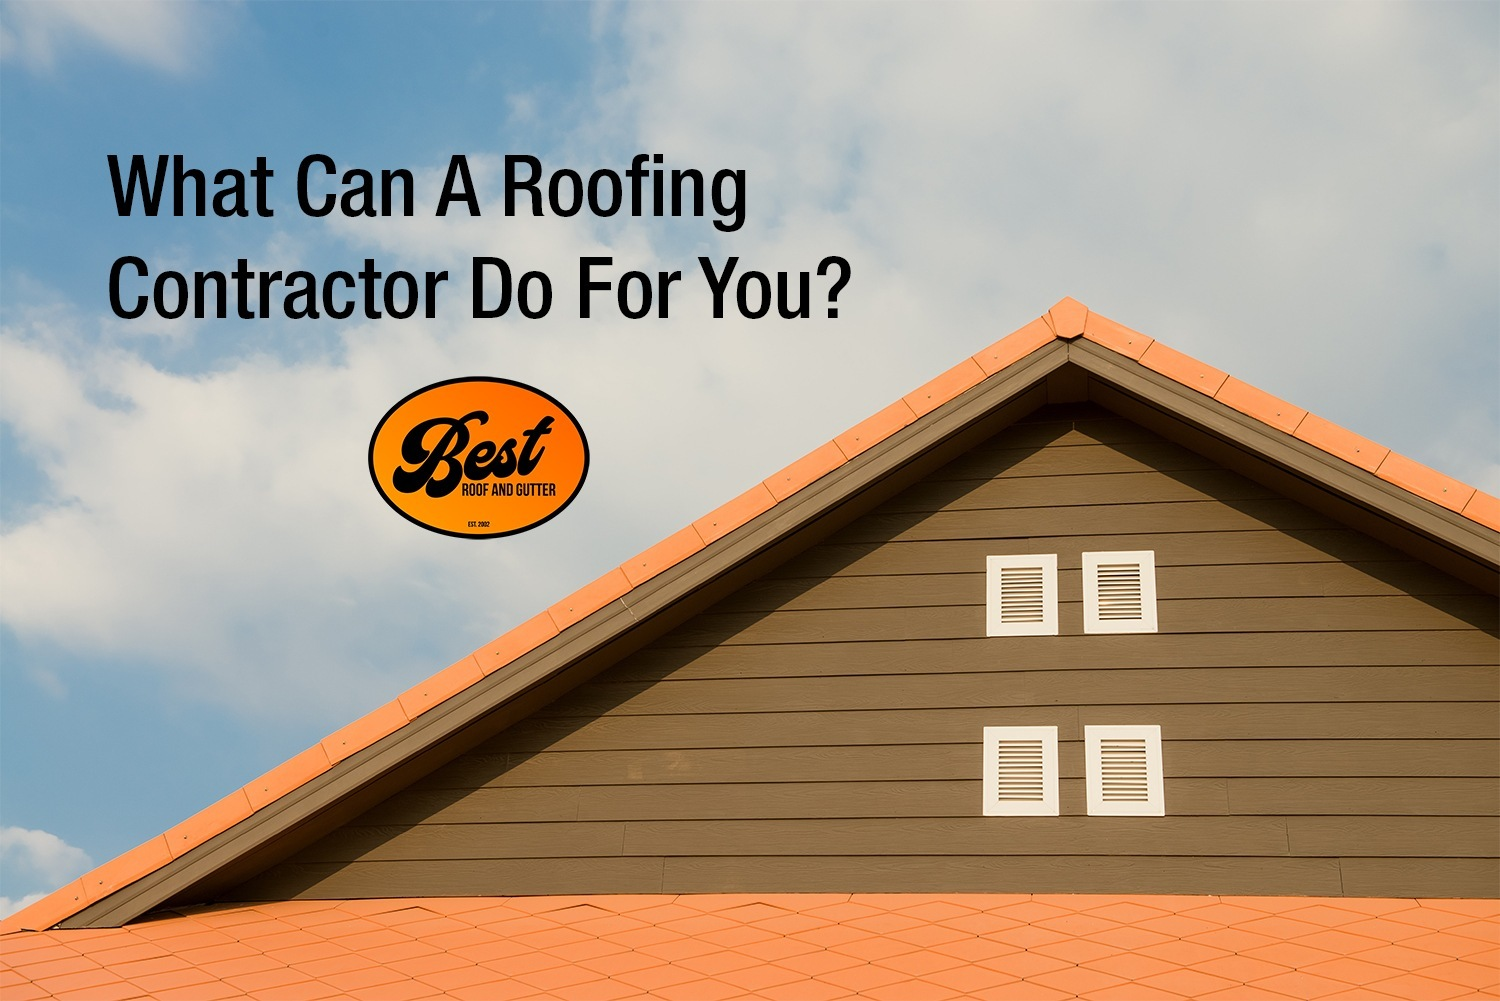 What Can A Roofing Contractor Do For You